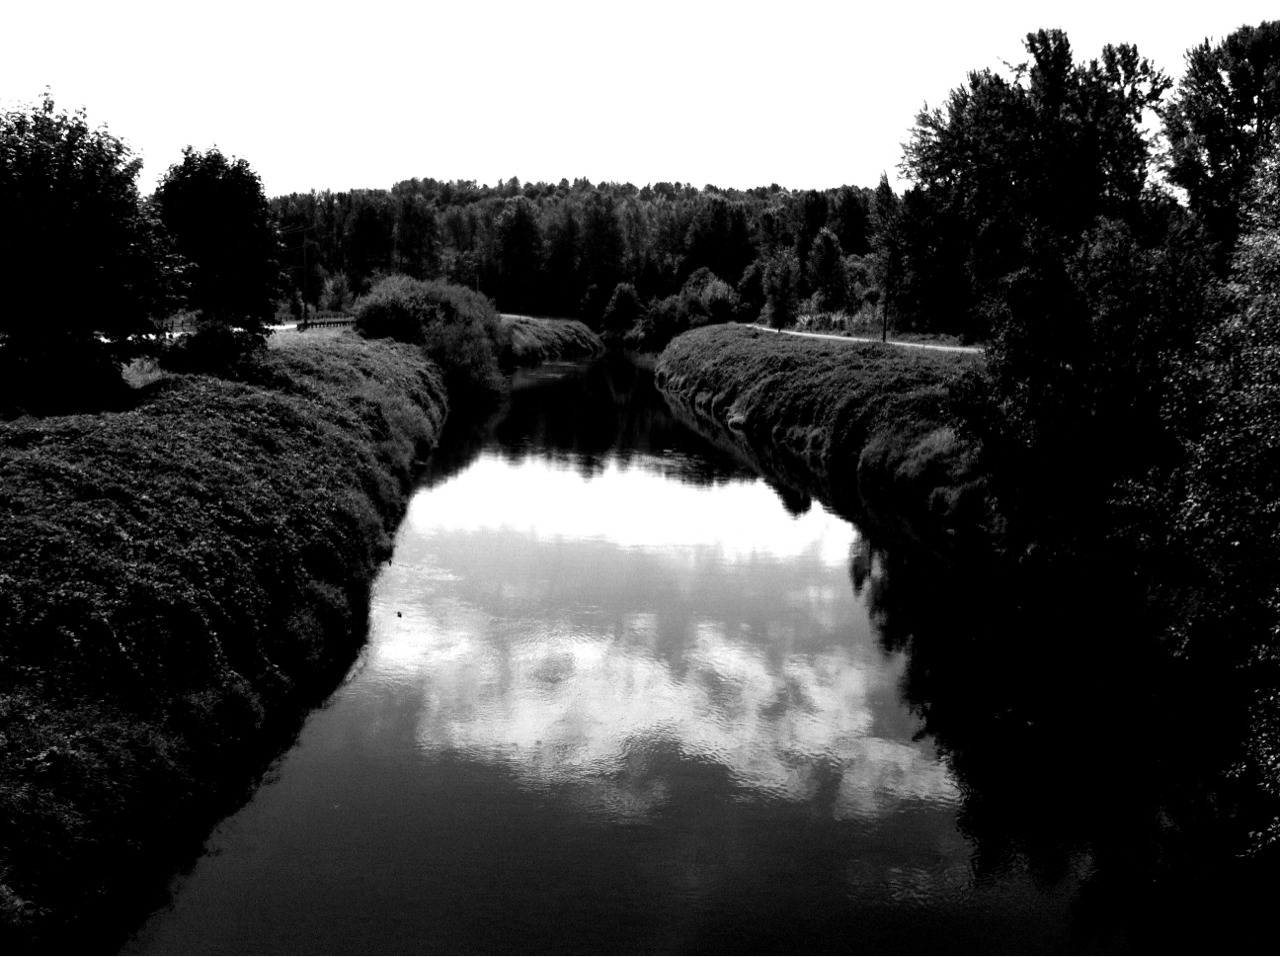 Green River #hueless ©2012 Kent Kangley